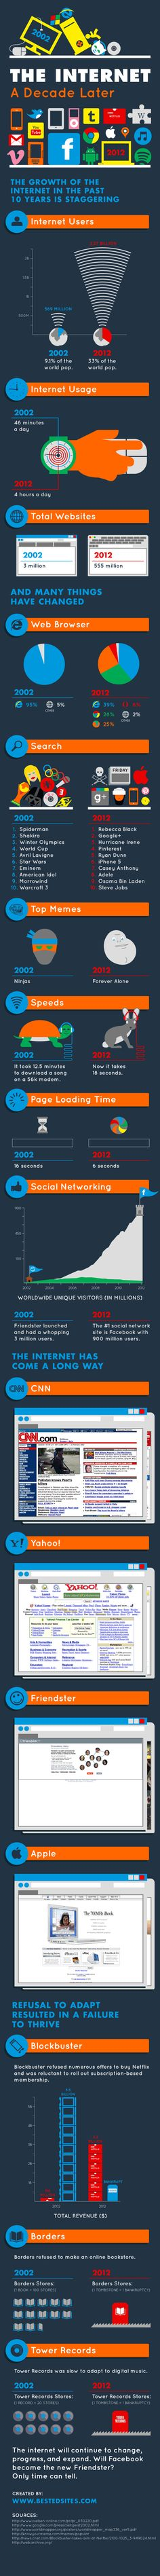 The Internet a decade later #internet #browser #social